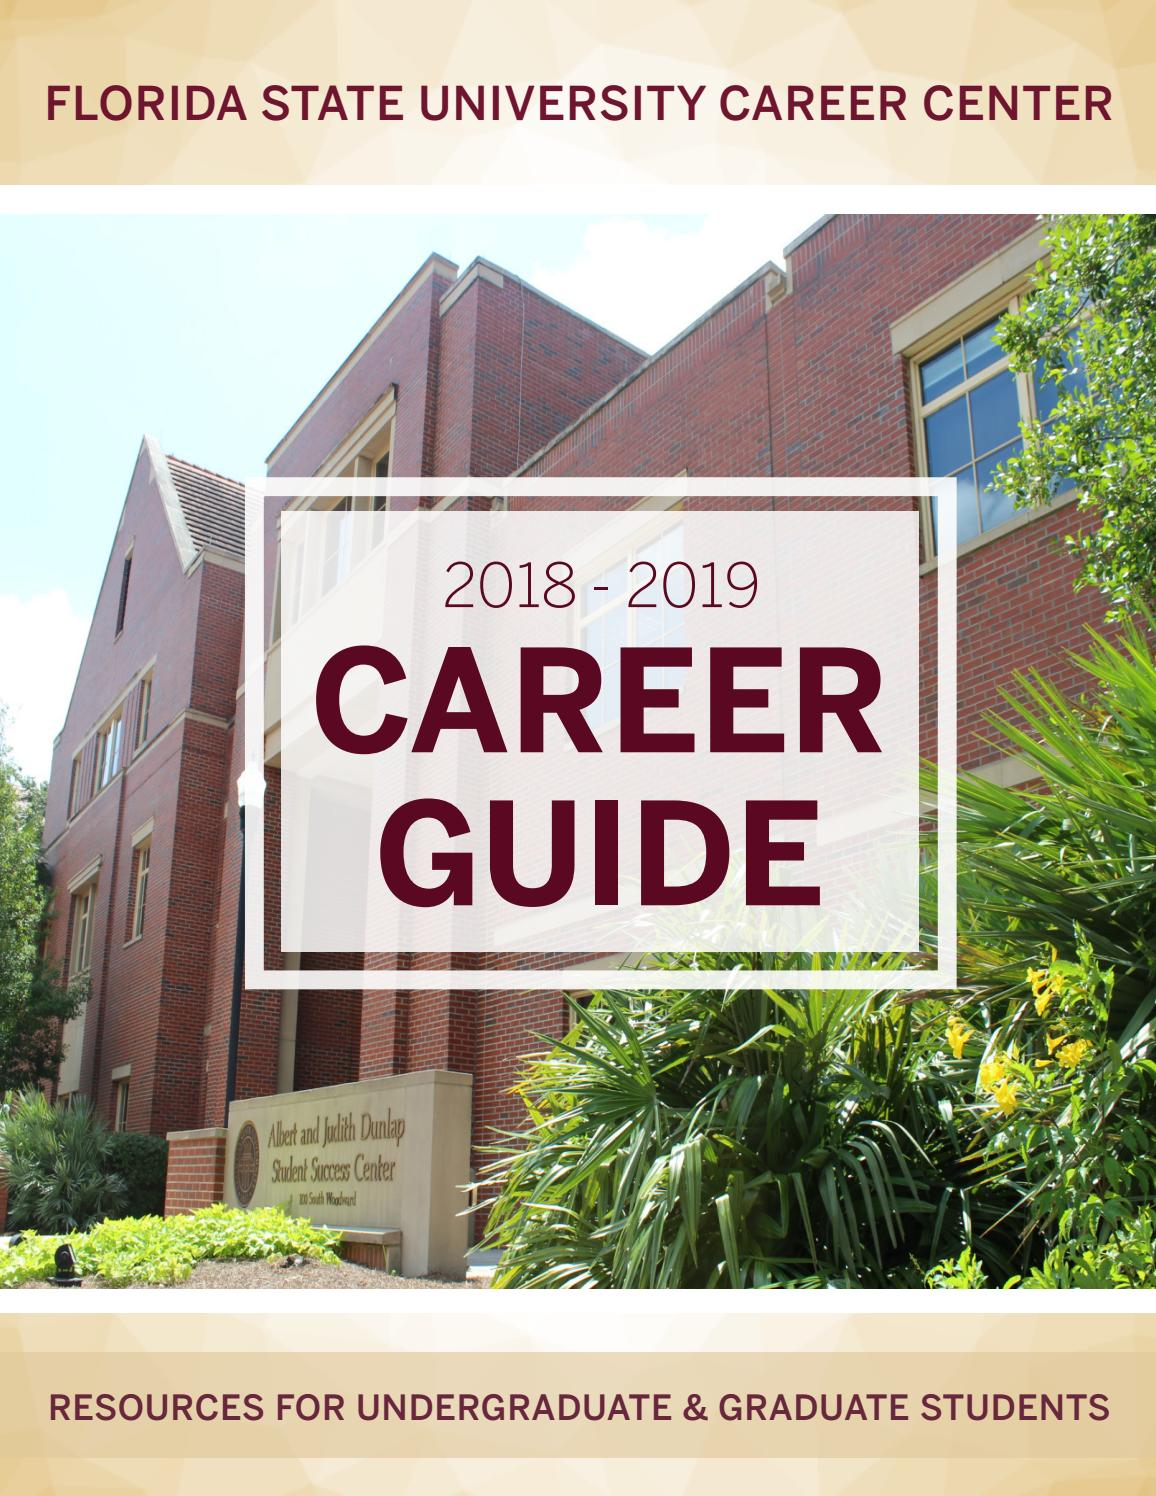 FSU Career Guide 2018-2019 by Florida State University